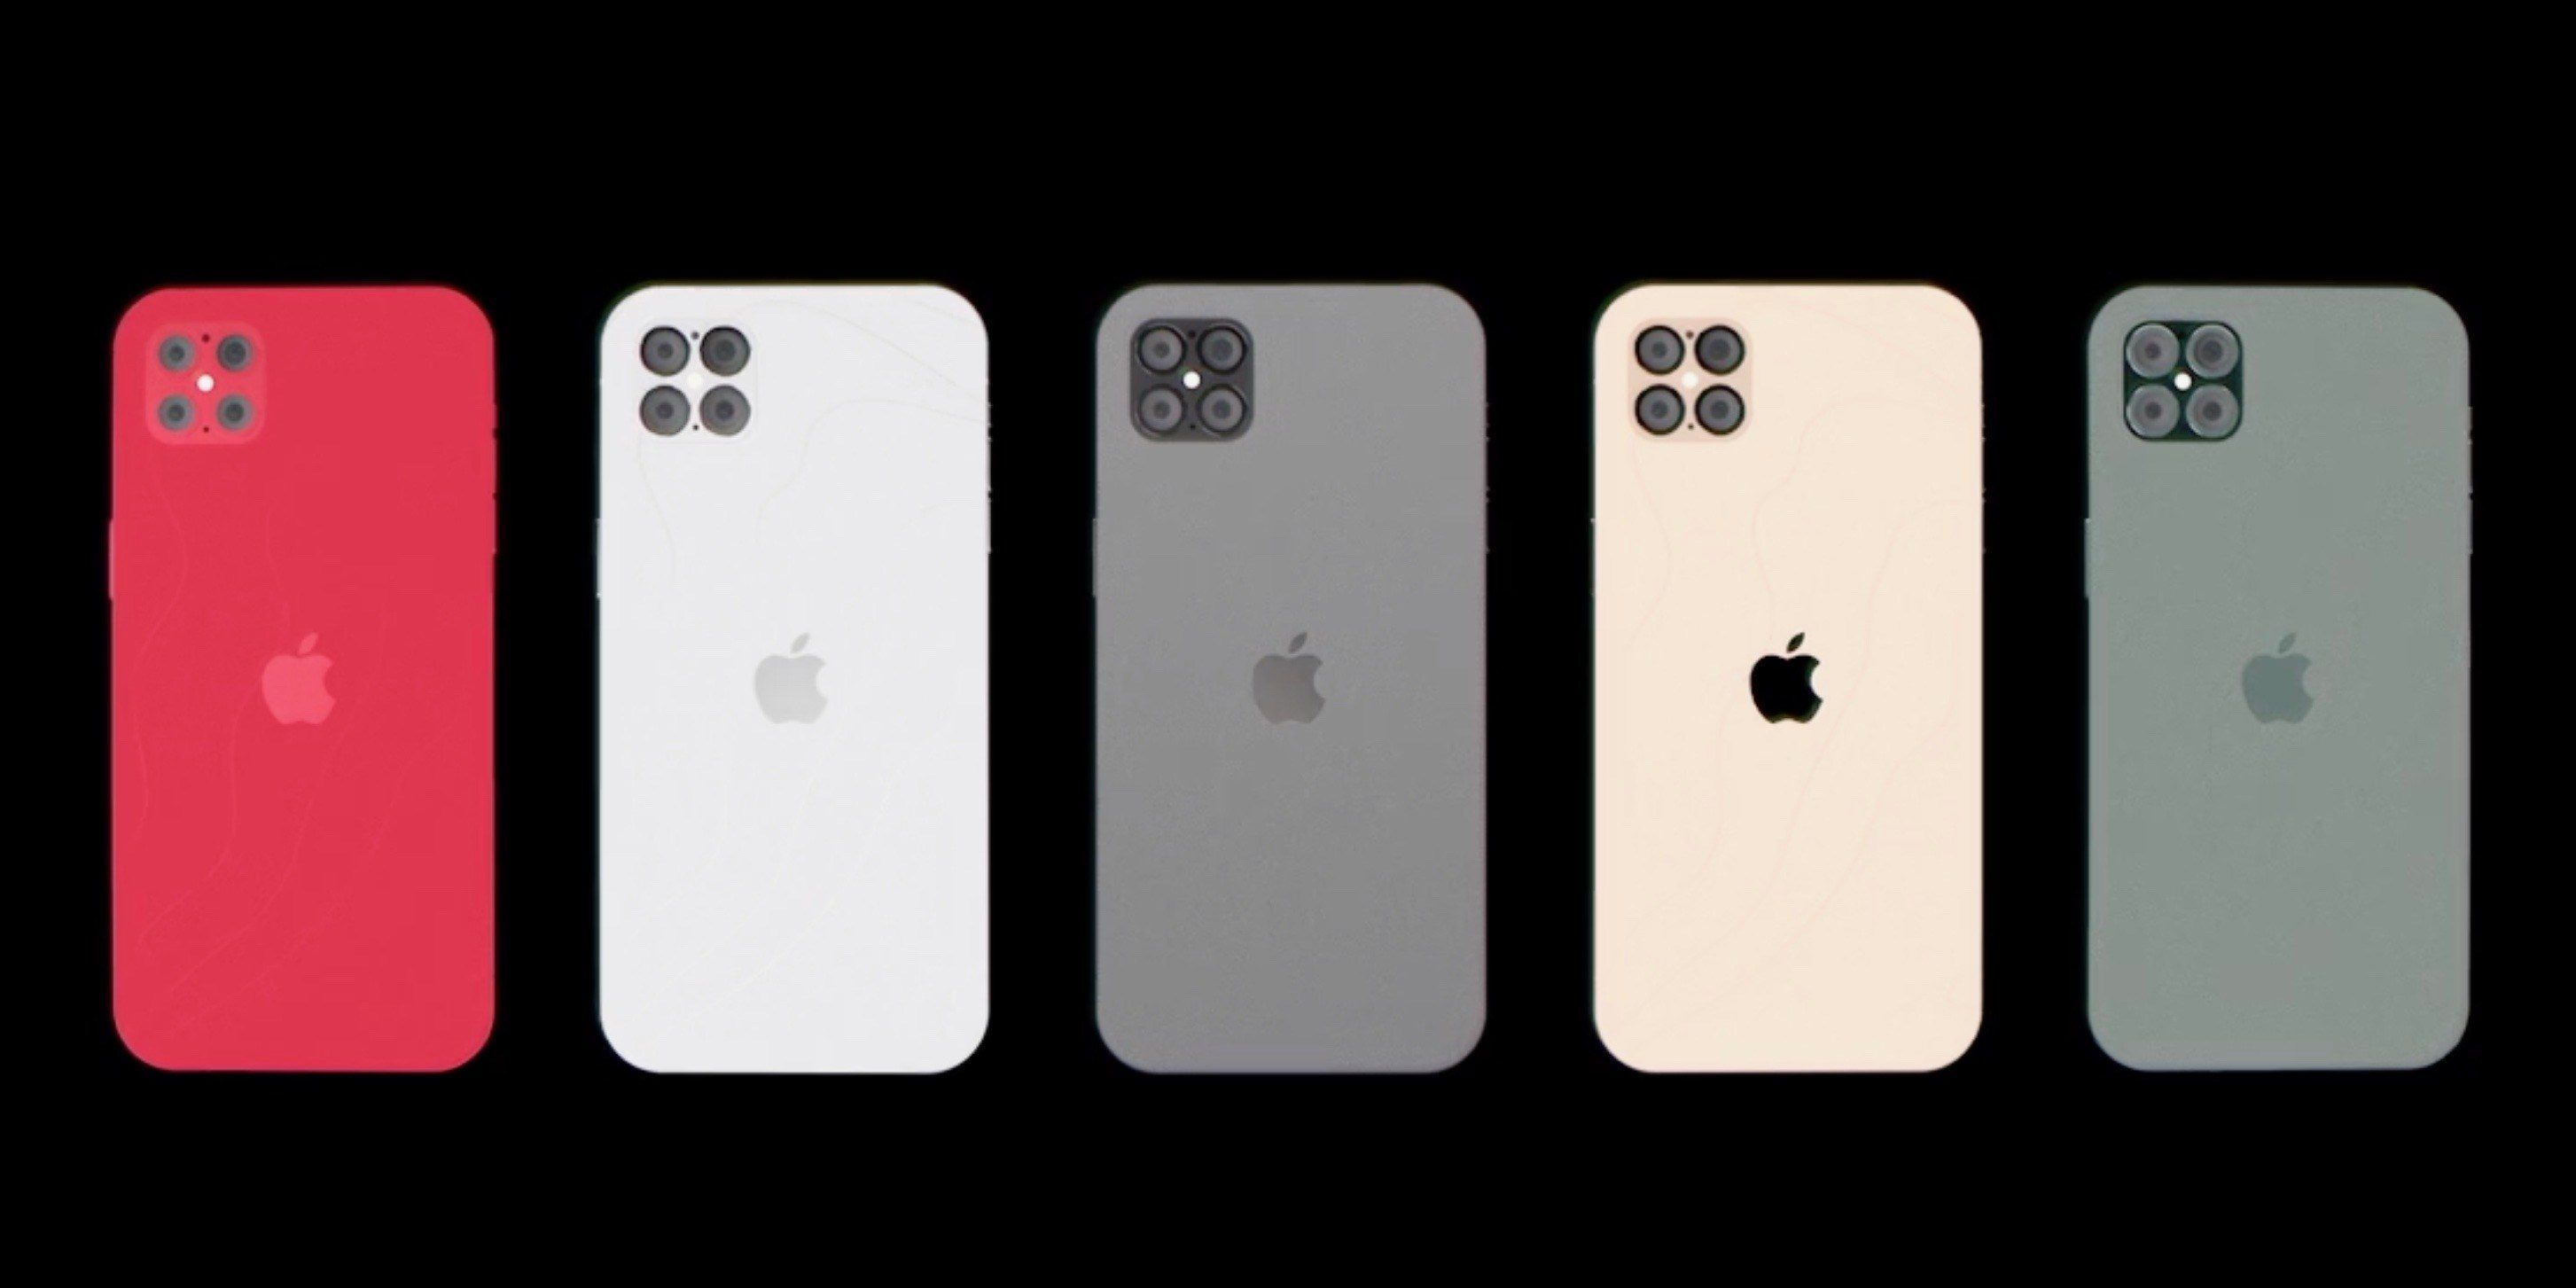 iPhone 12 Pro Concept Imagines iPhone SE Design with ProMotion Display, four Cameras, more